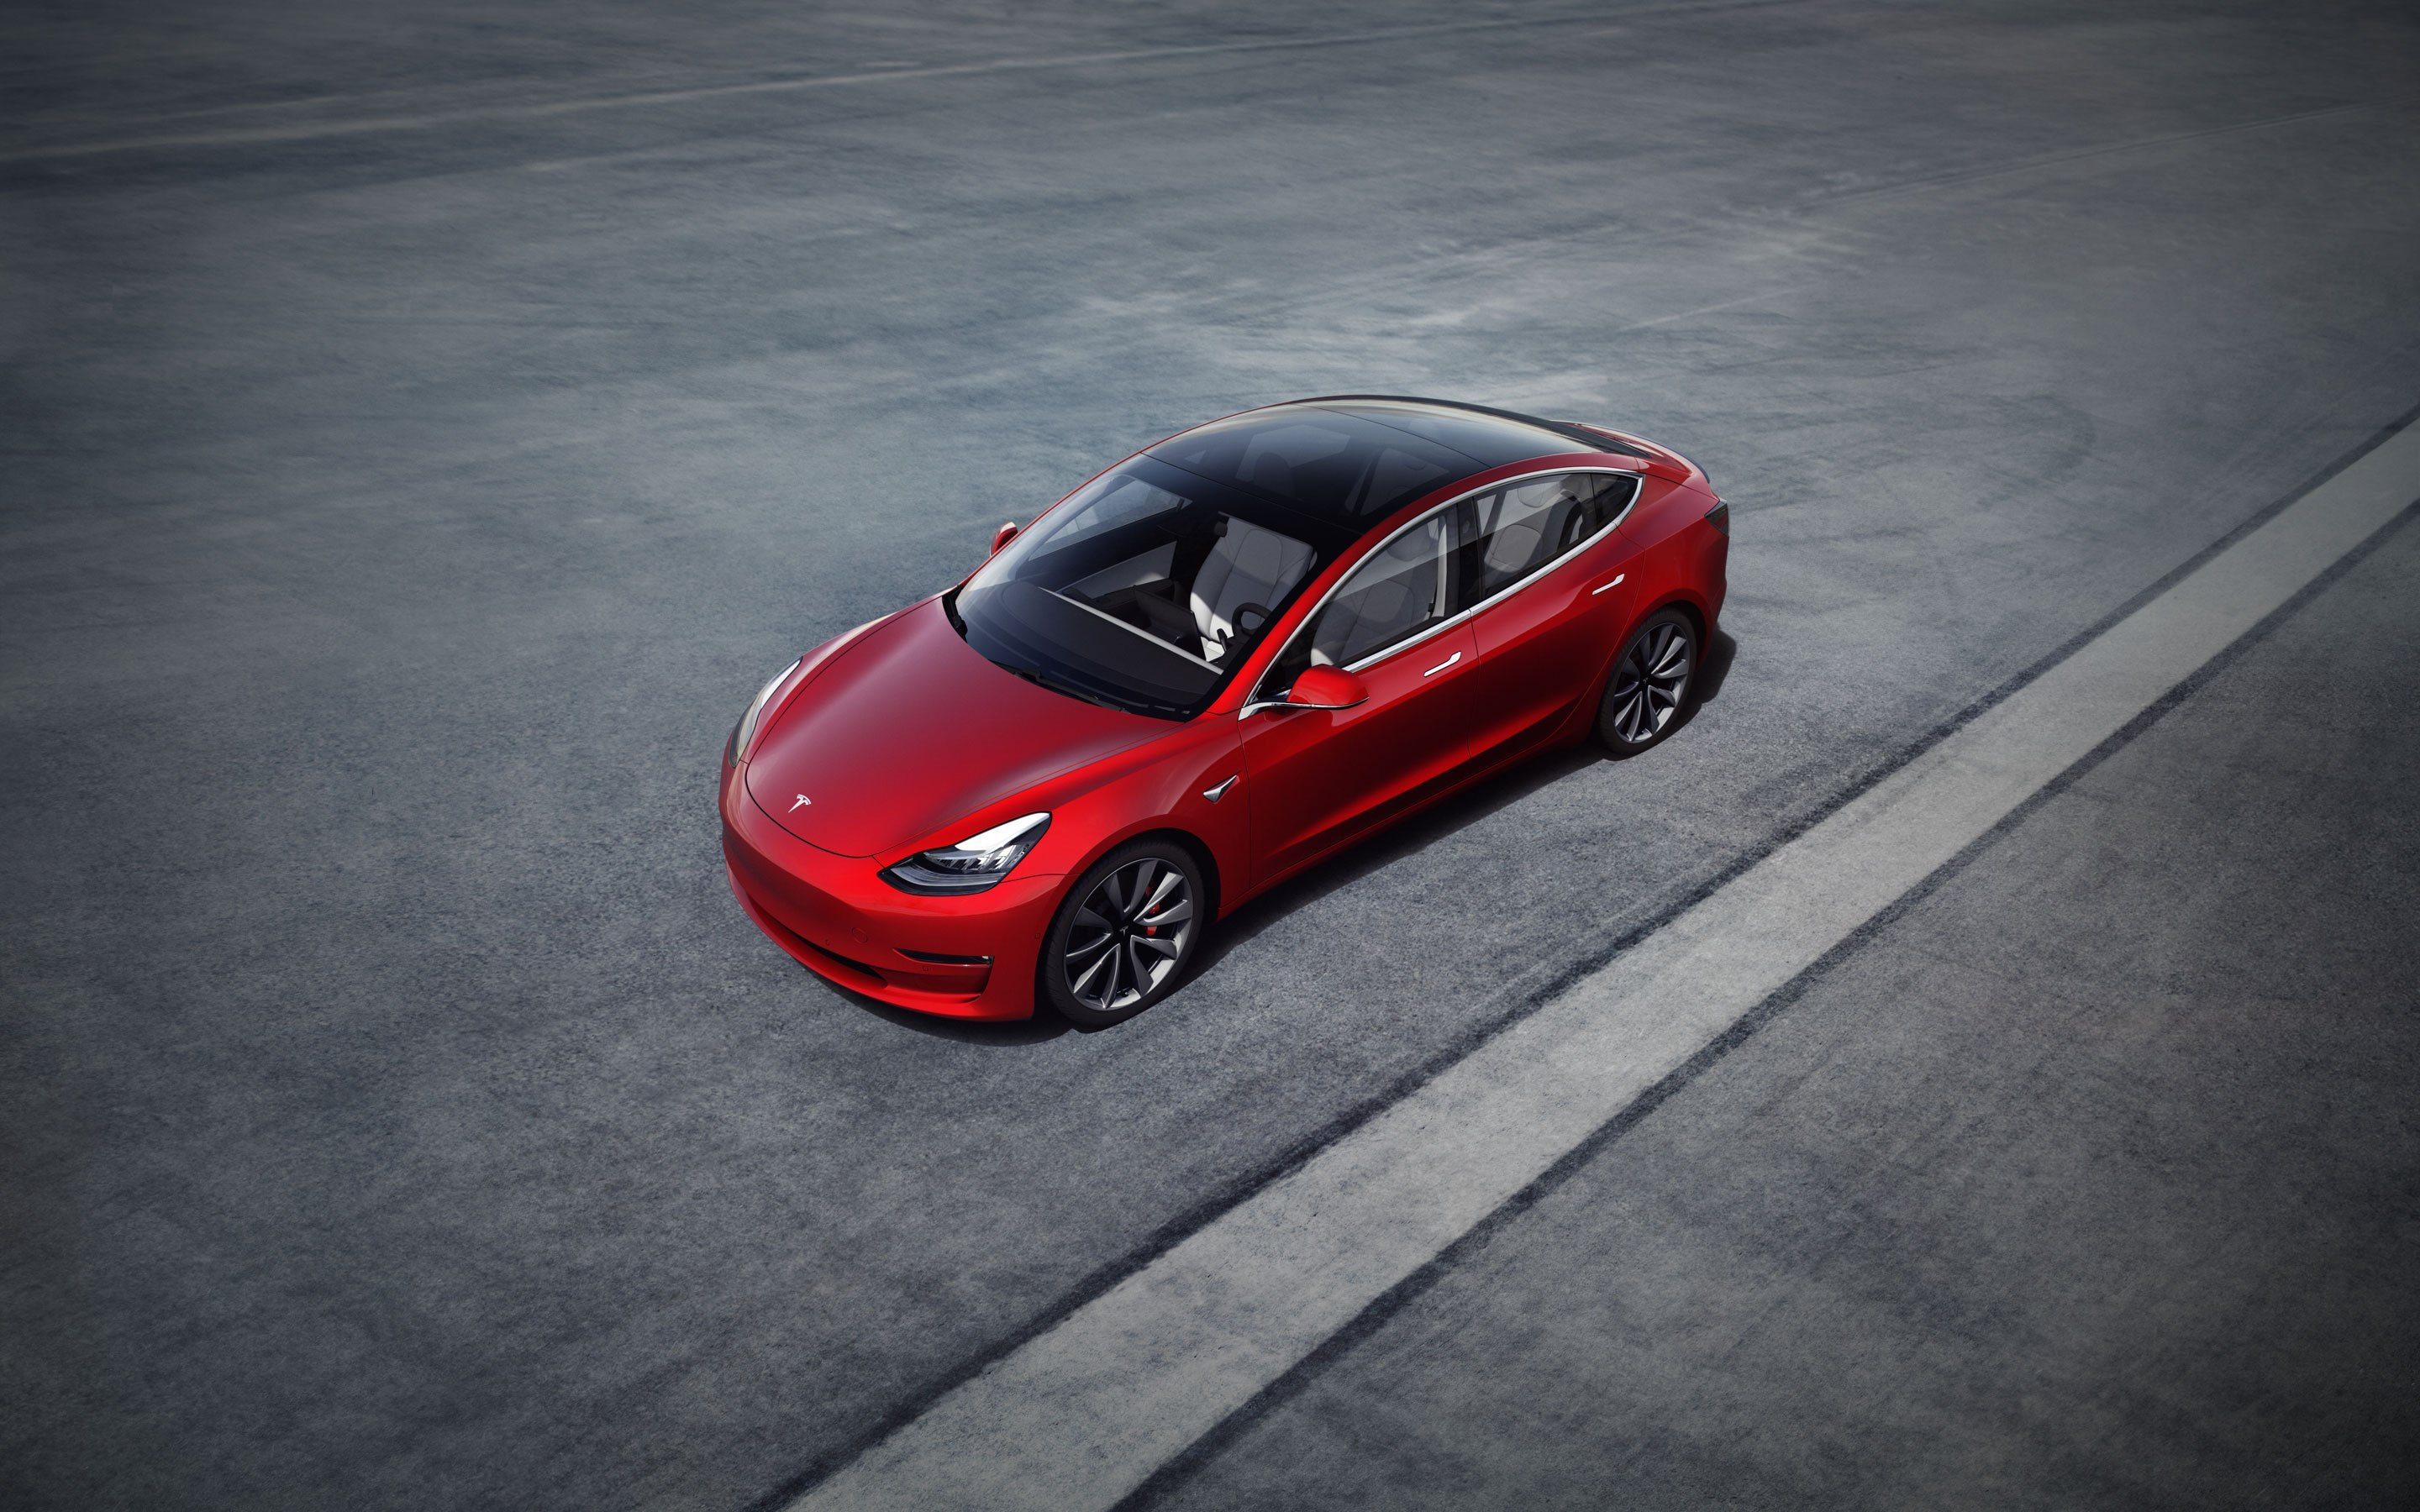 Tesla Model 3 : un pack circuit à 5500 dollars pour les amateurs de sensations fortes